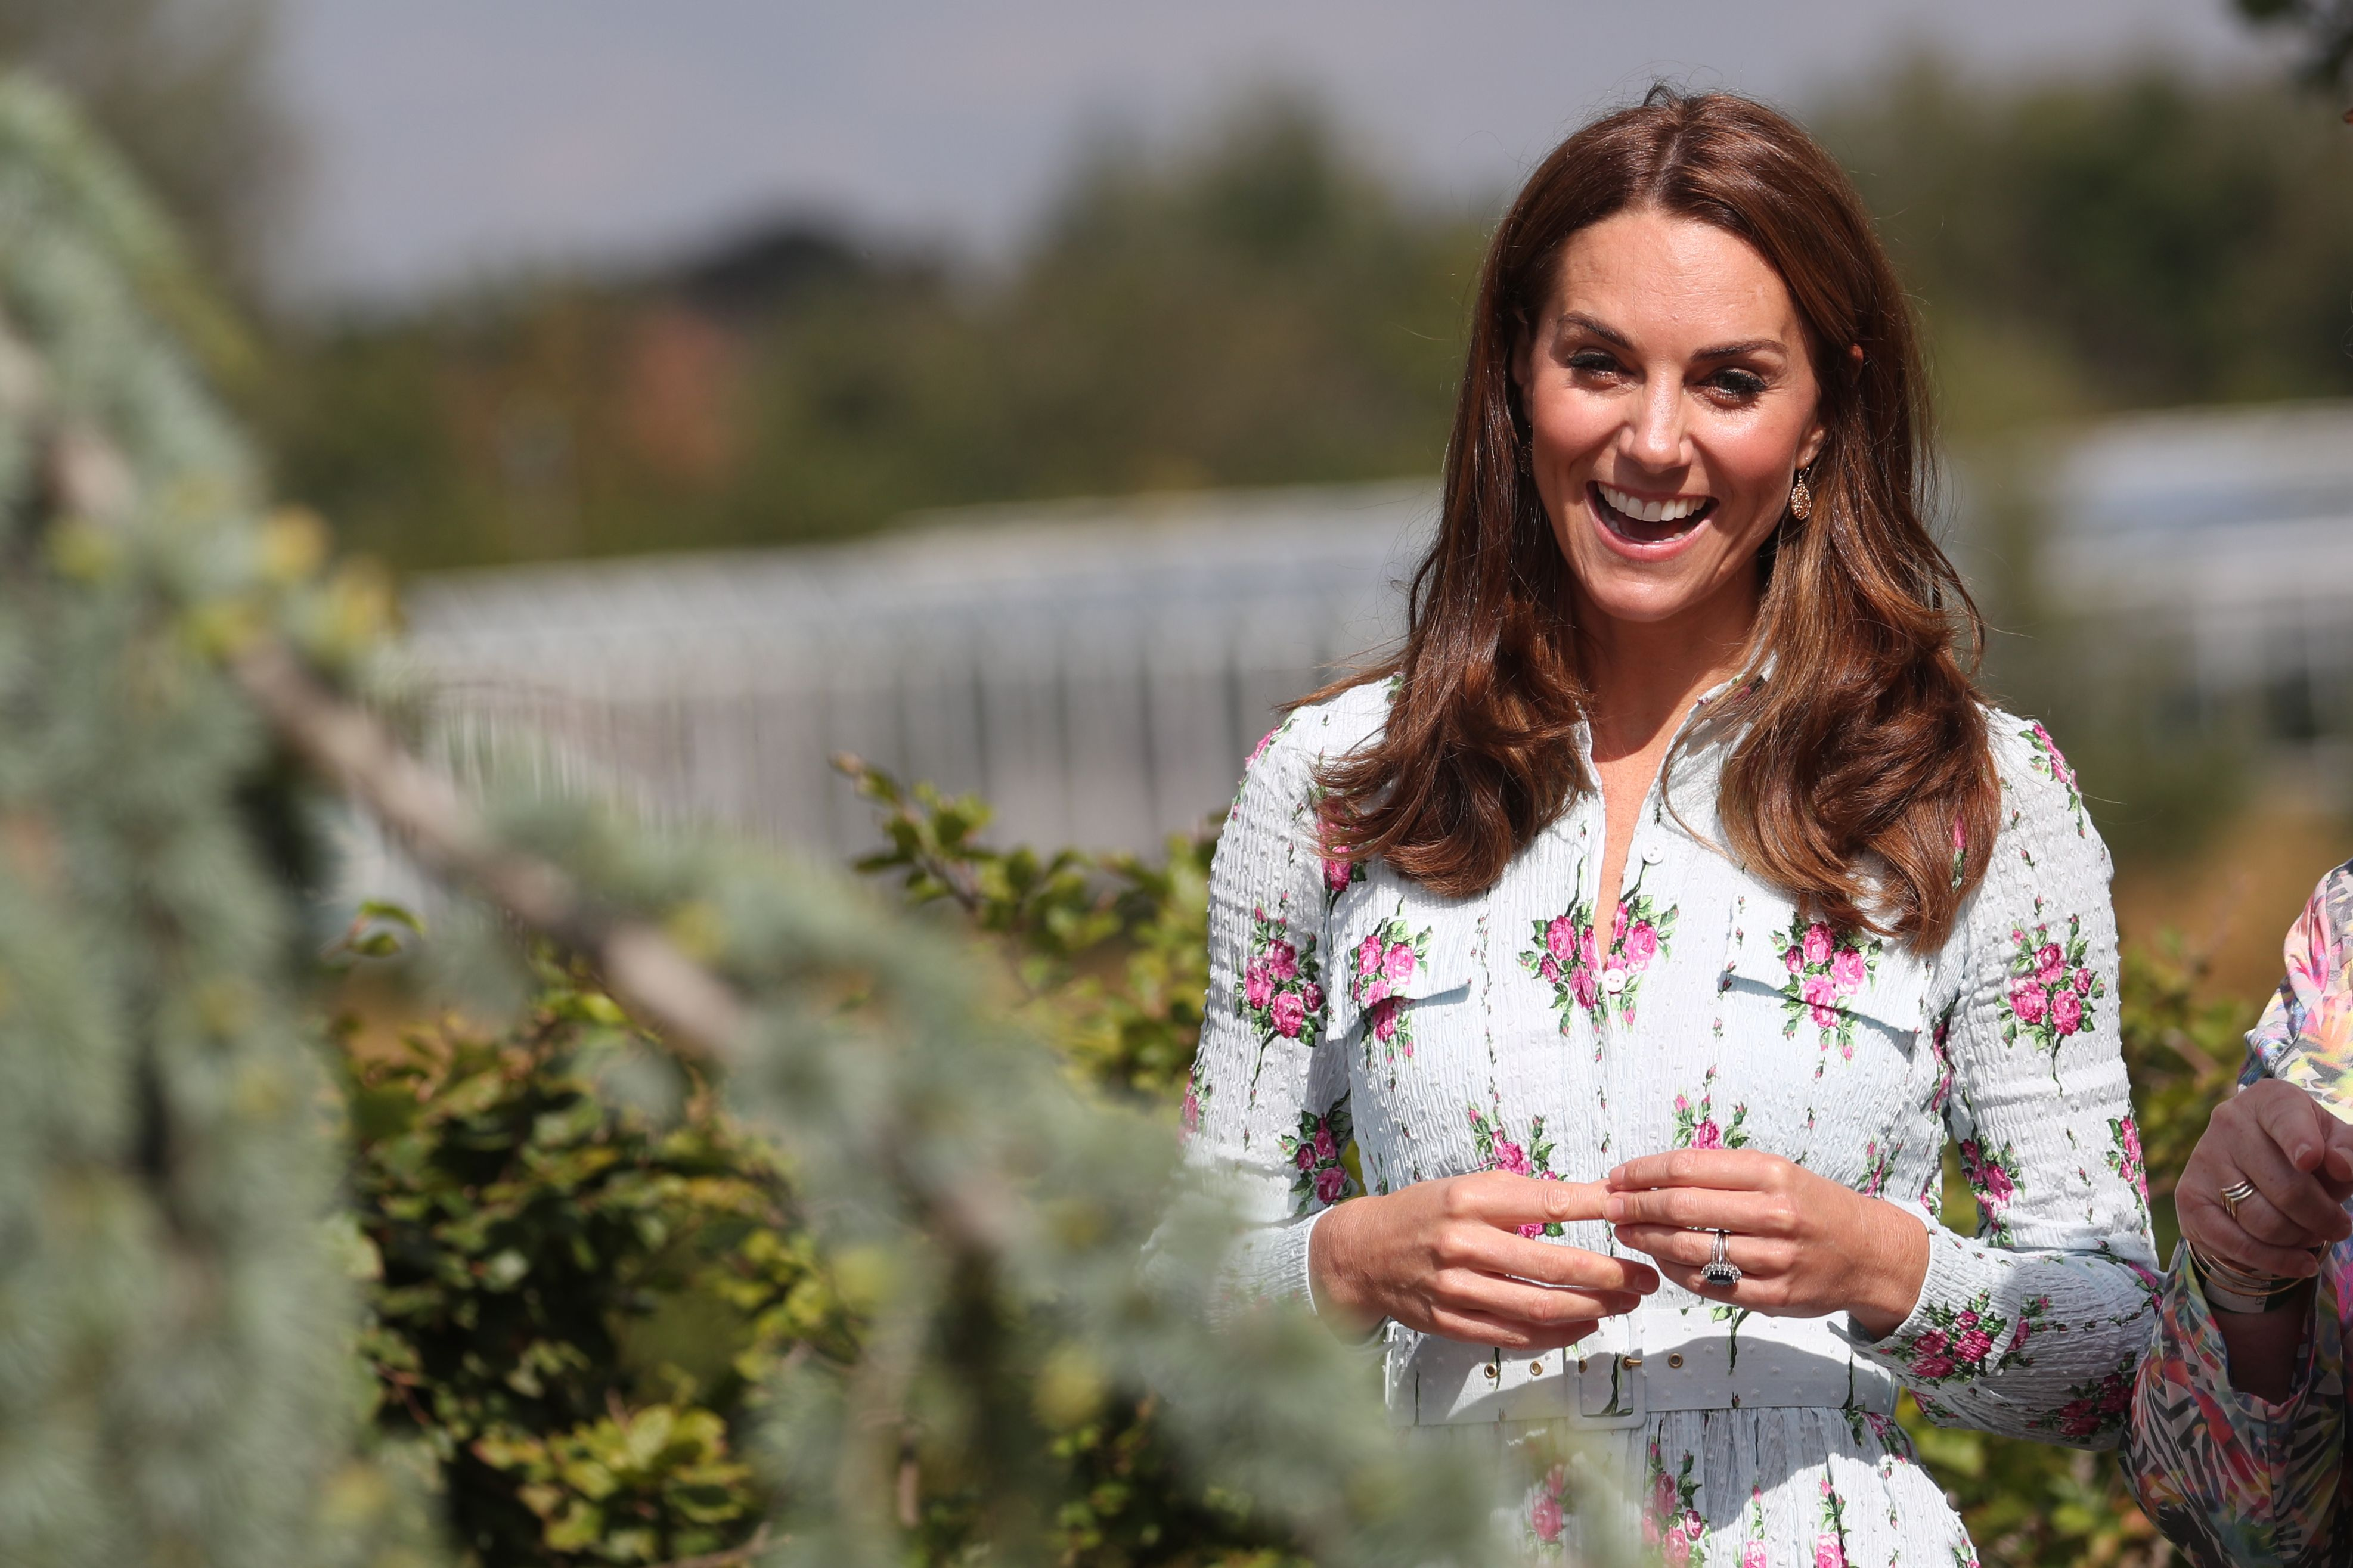 Kate Middleton Makes a Surprise Appearance in a Stunning Emilia Wickstead Dress